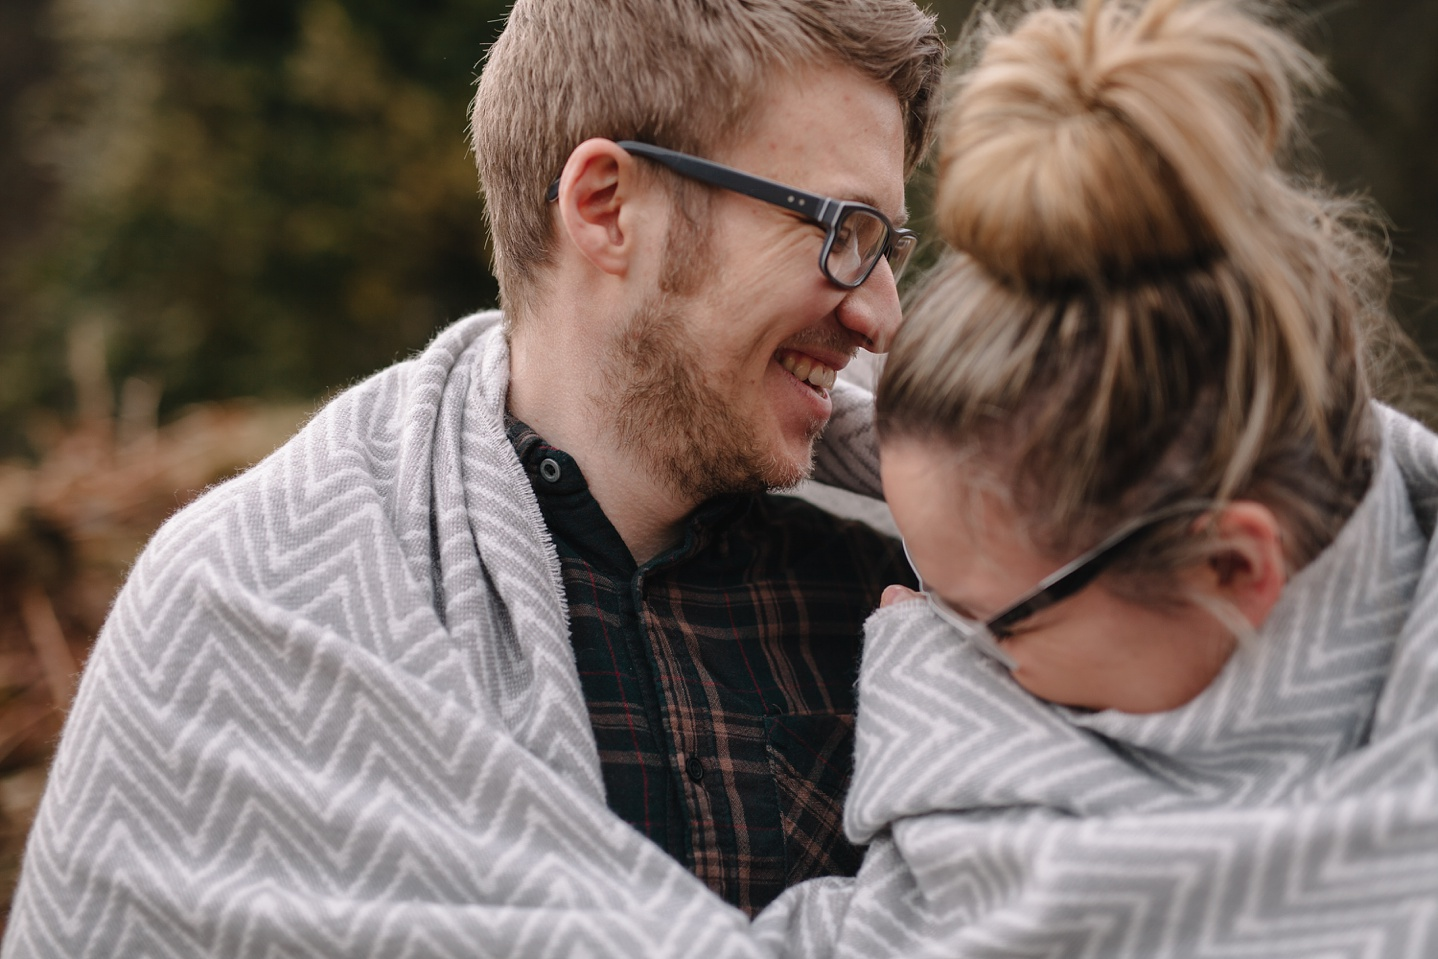 man and woman wrapped in a blanket laughing